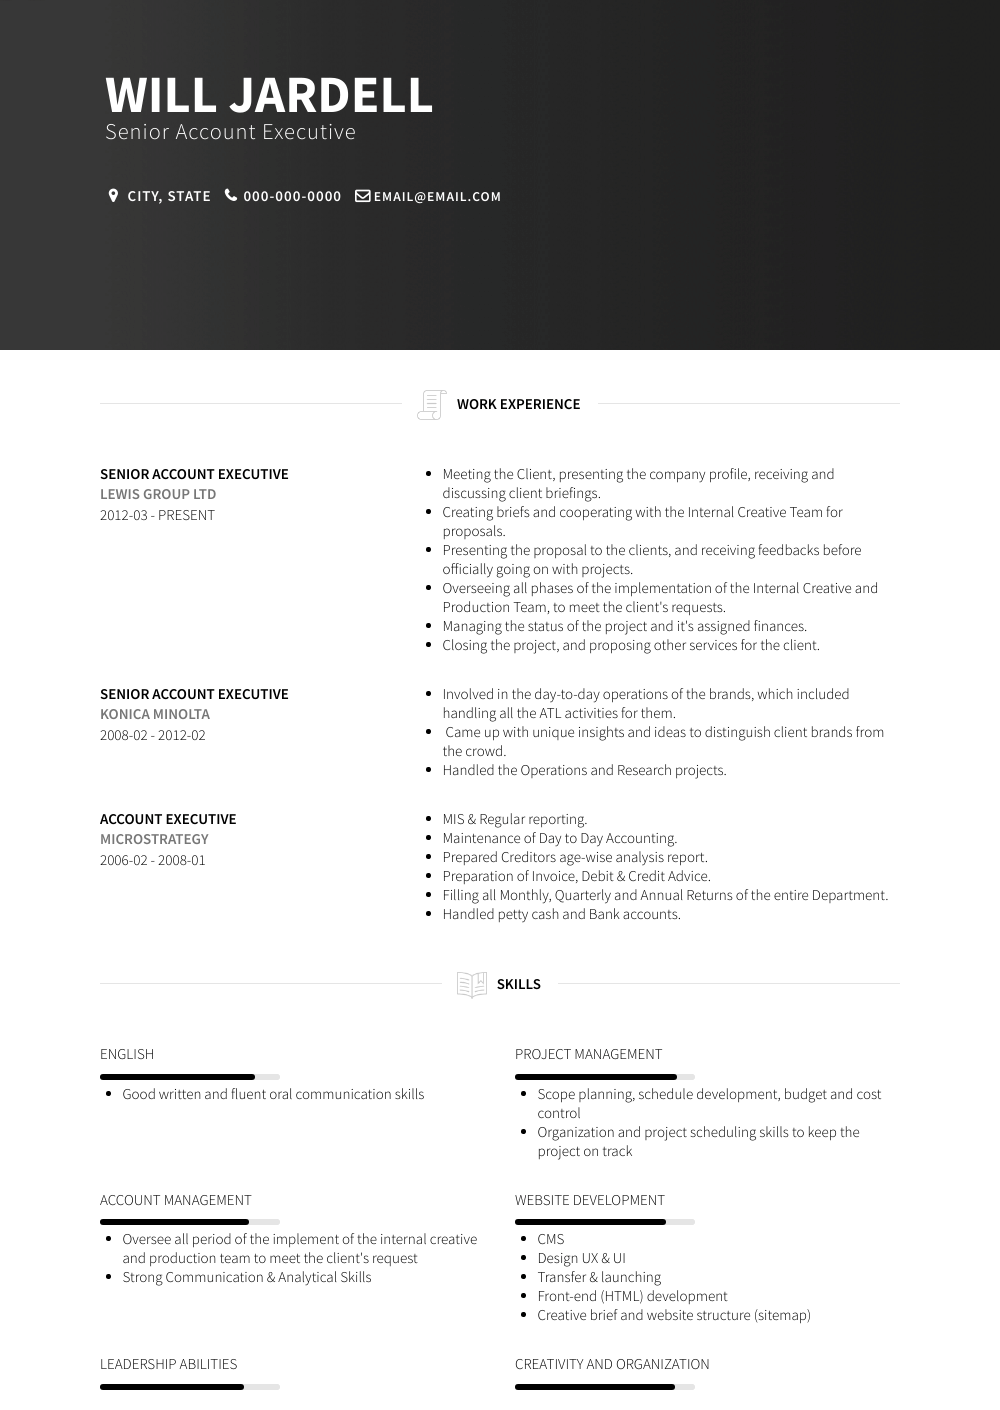 Senior Account Executive Resume Sample